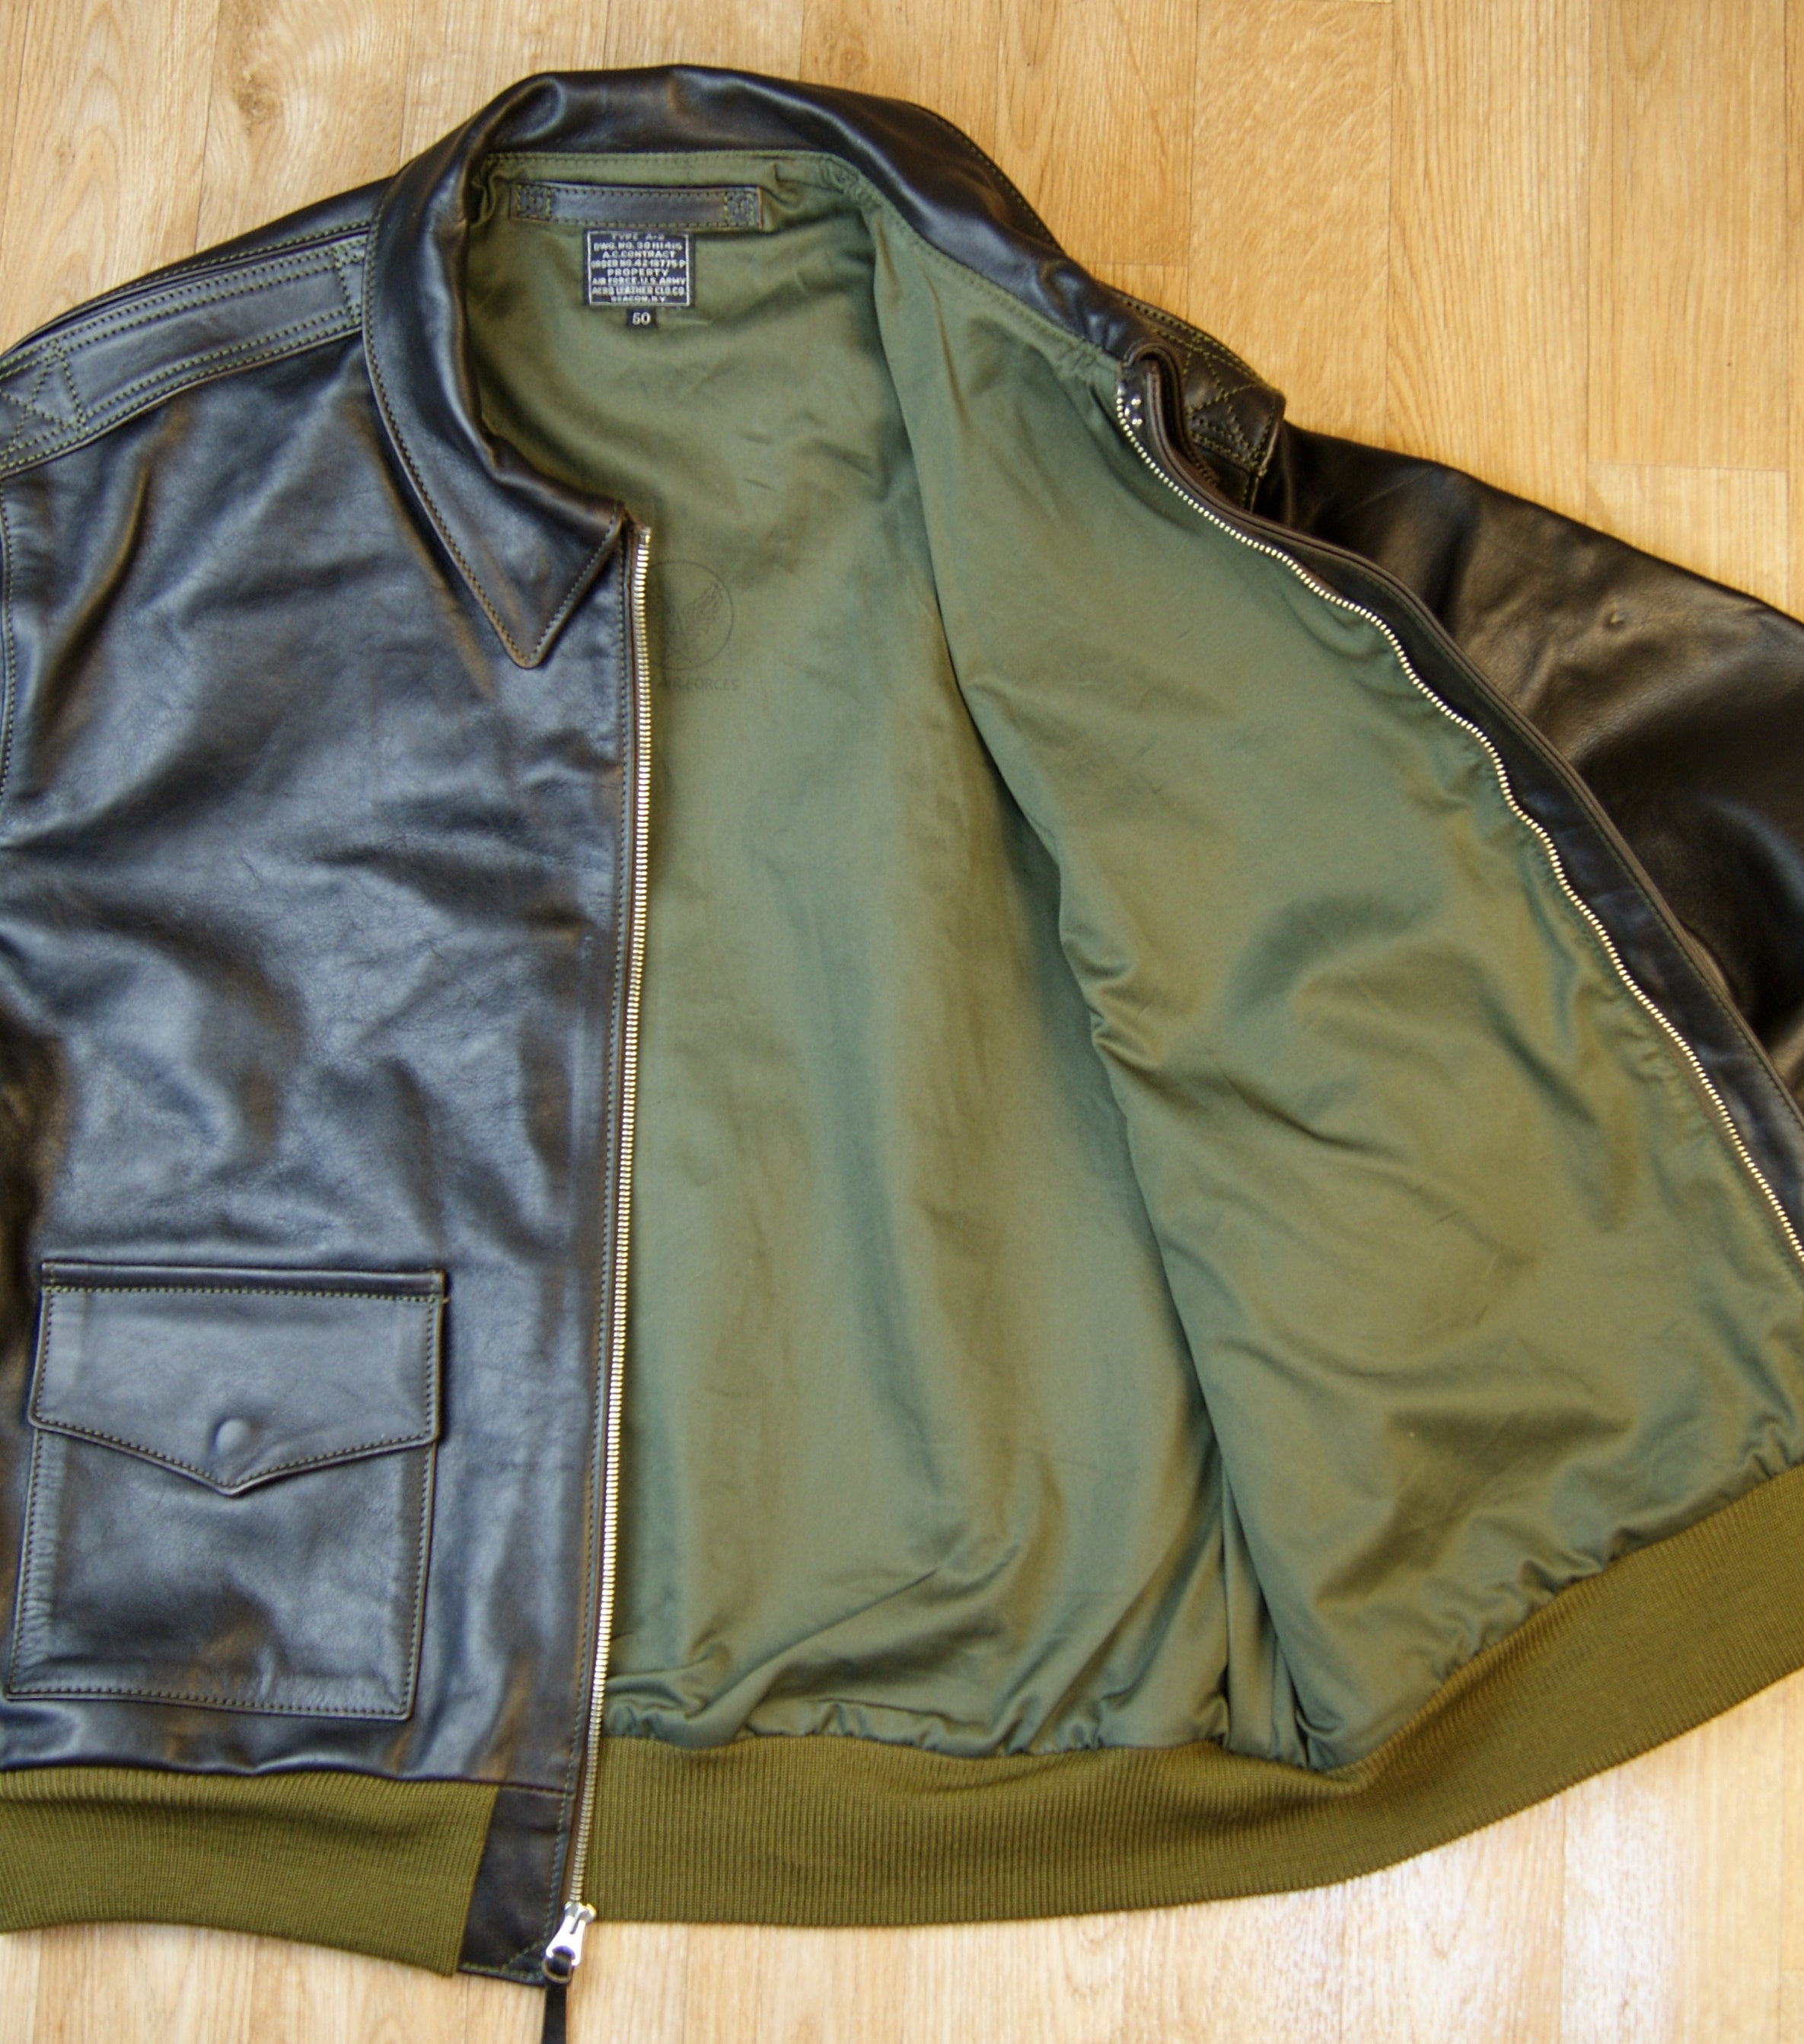 Aero A-2 Military Flight Jacket, size 50, Blackened Brown Vicenza Horsehide